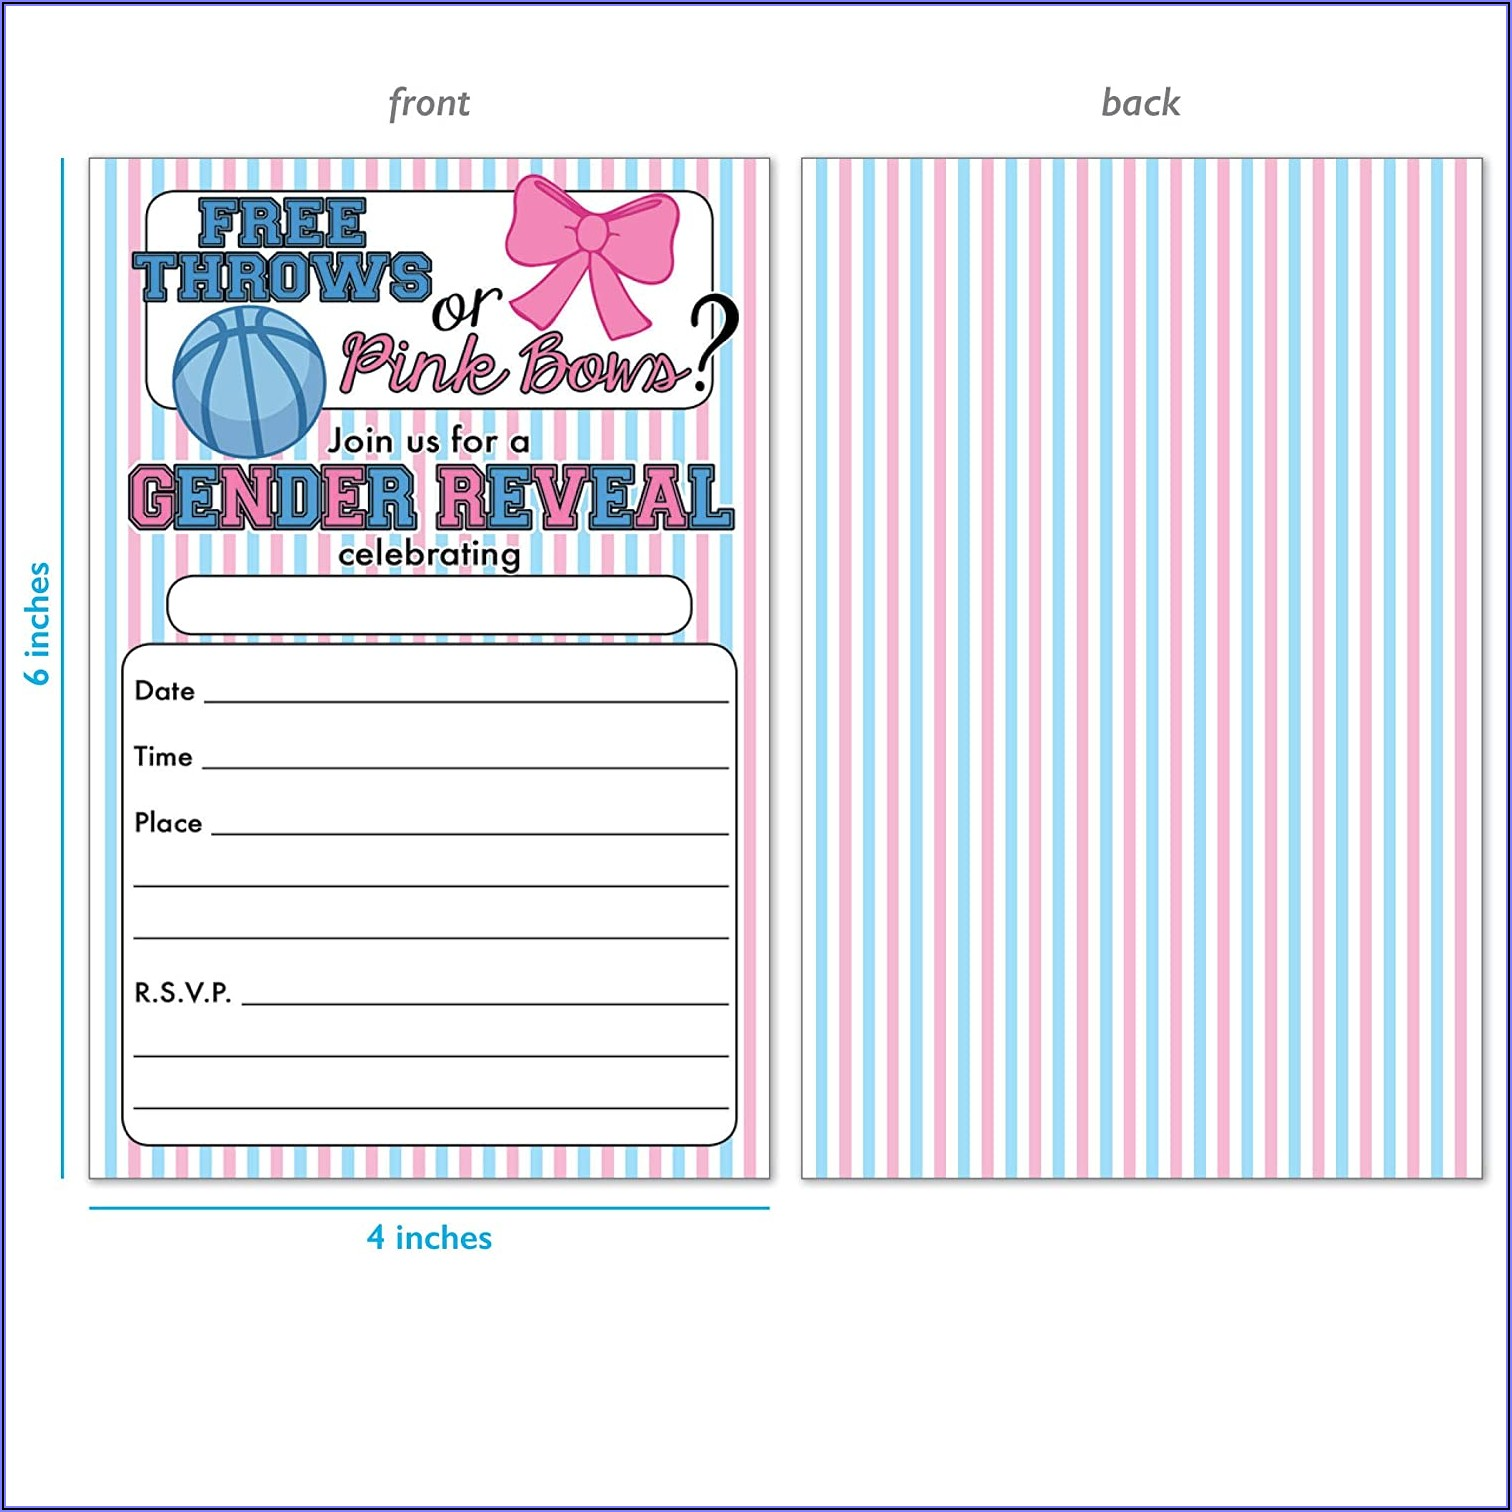 Gender Reveal Invitations Free Throws Or Pink Bows